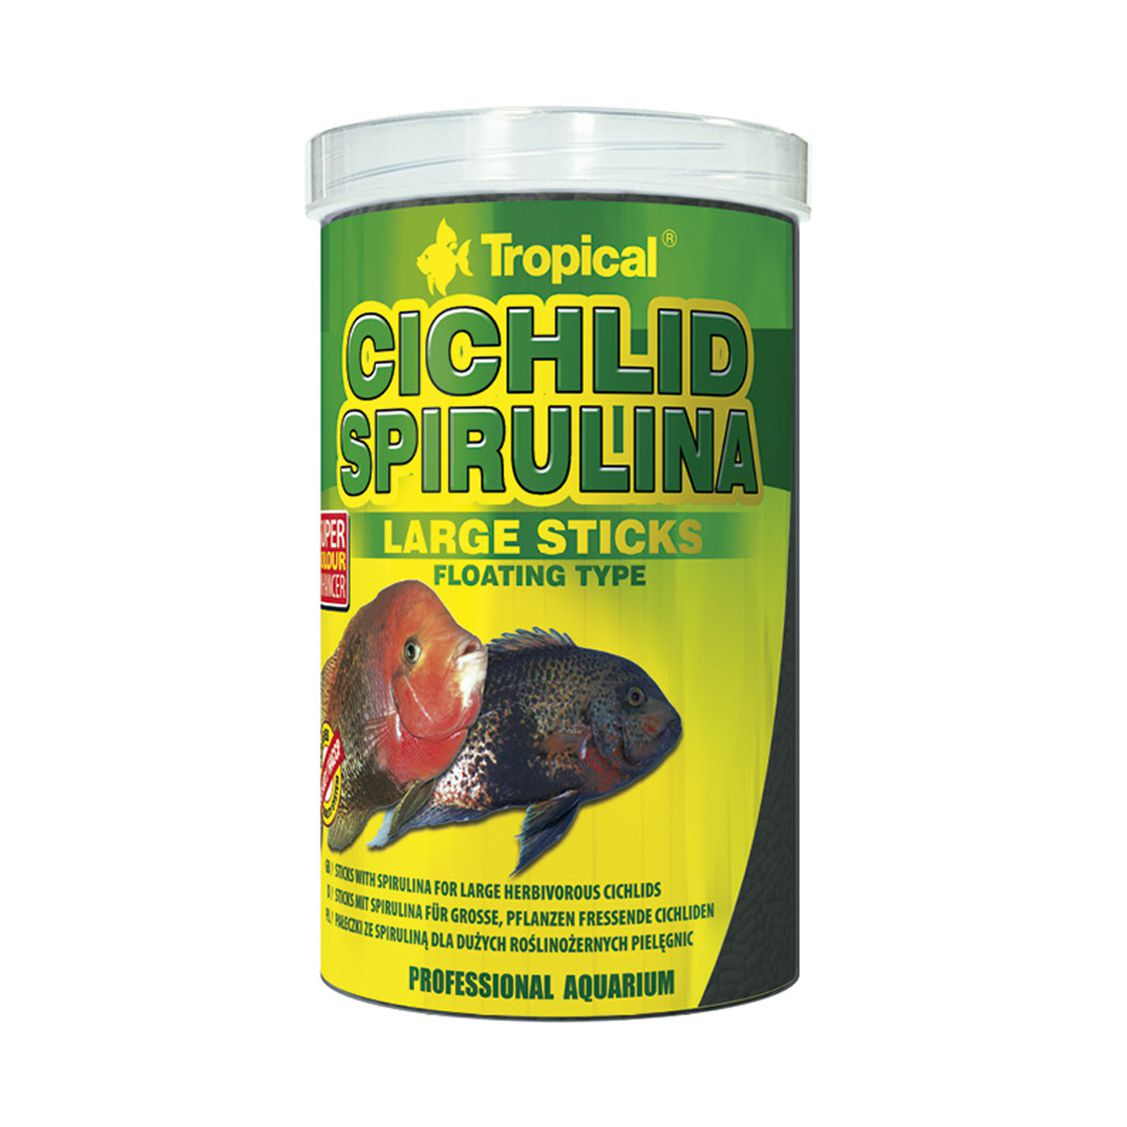 Tropical Cichlid Spirulina Large Sticks 75g